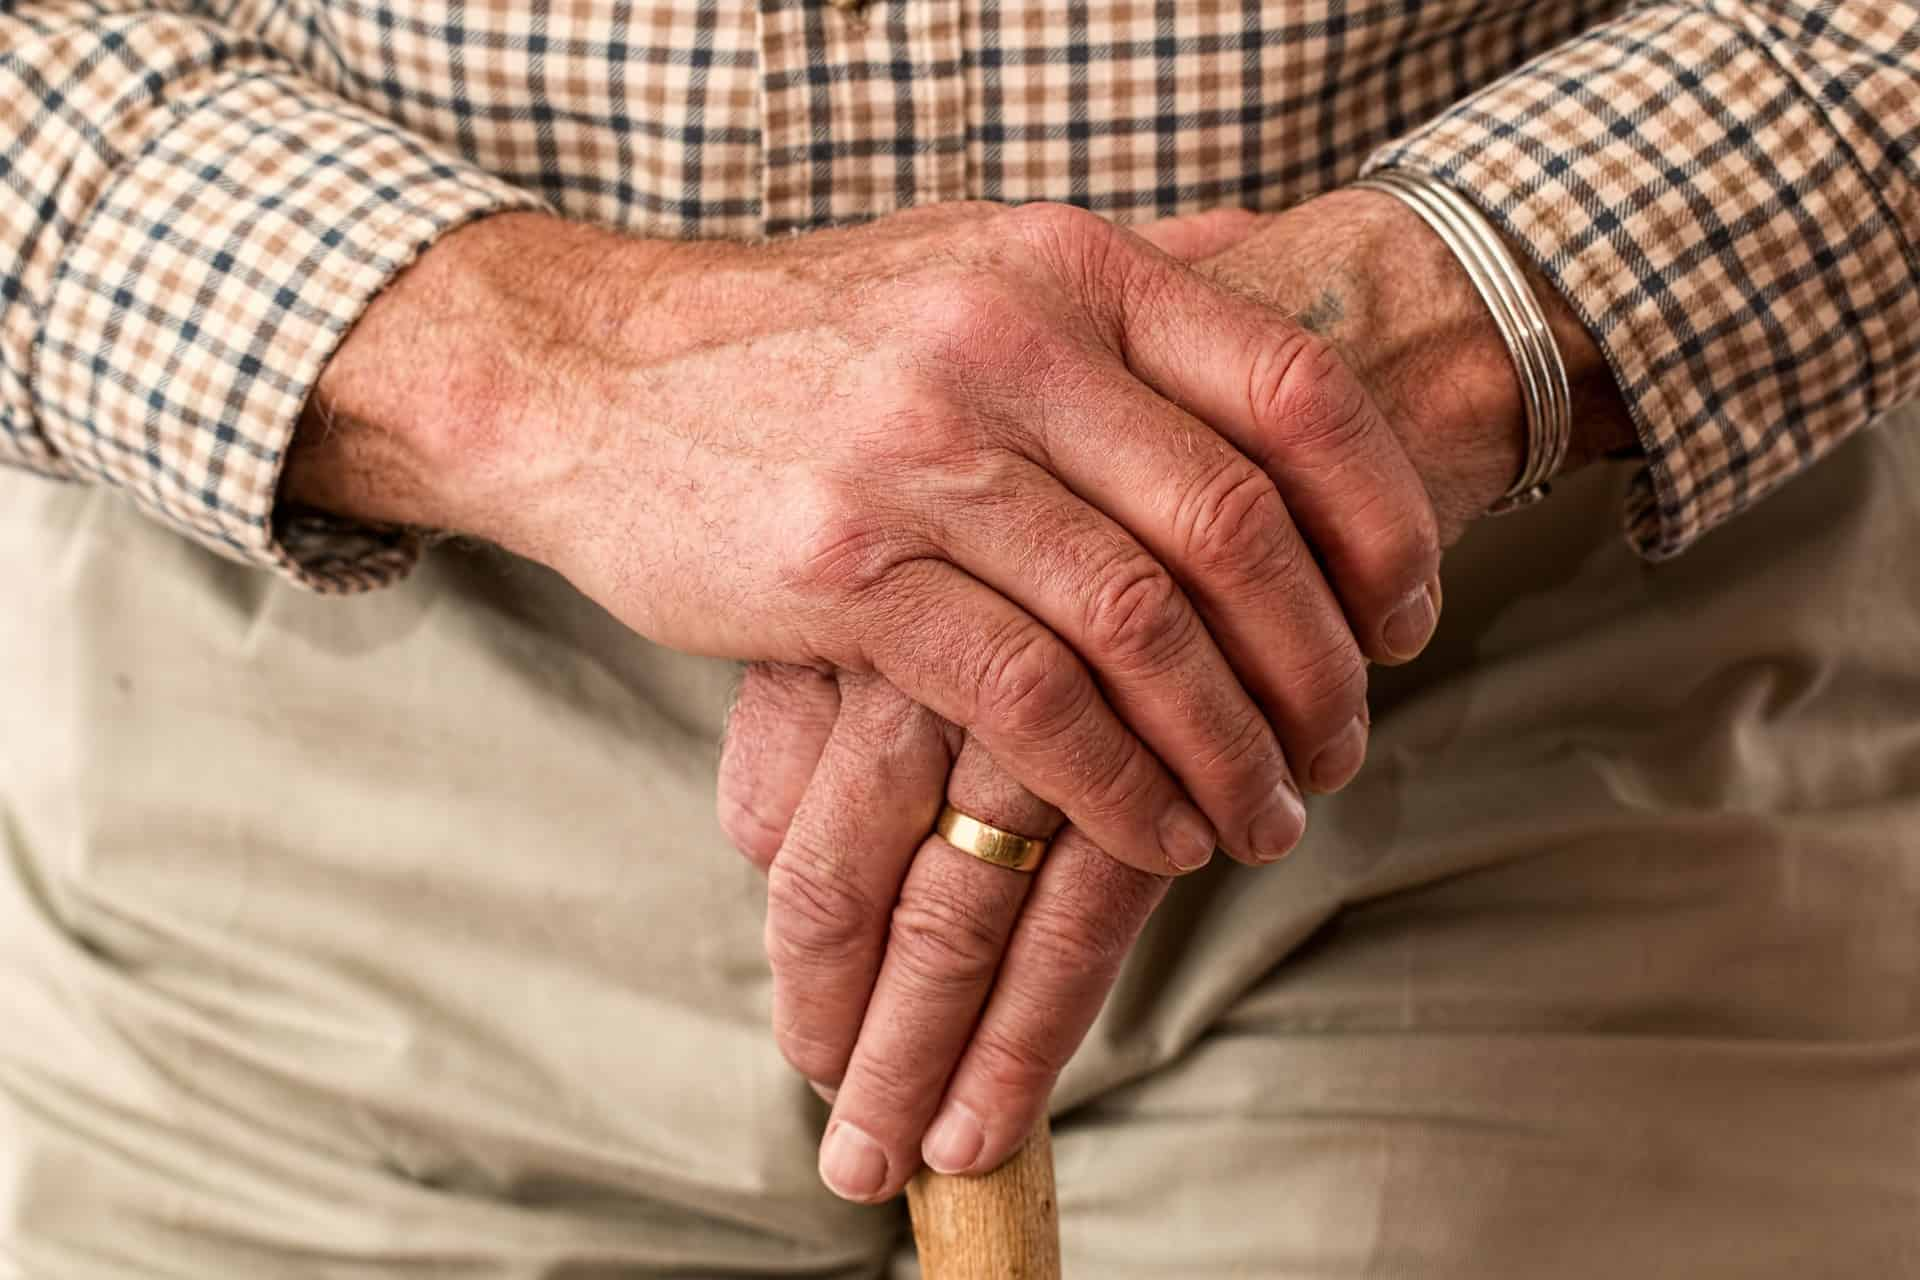 Chiropractic Care Techniques for the Elderly